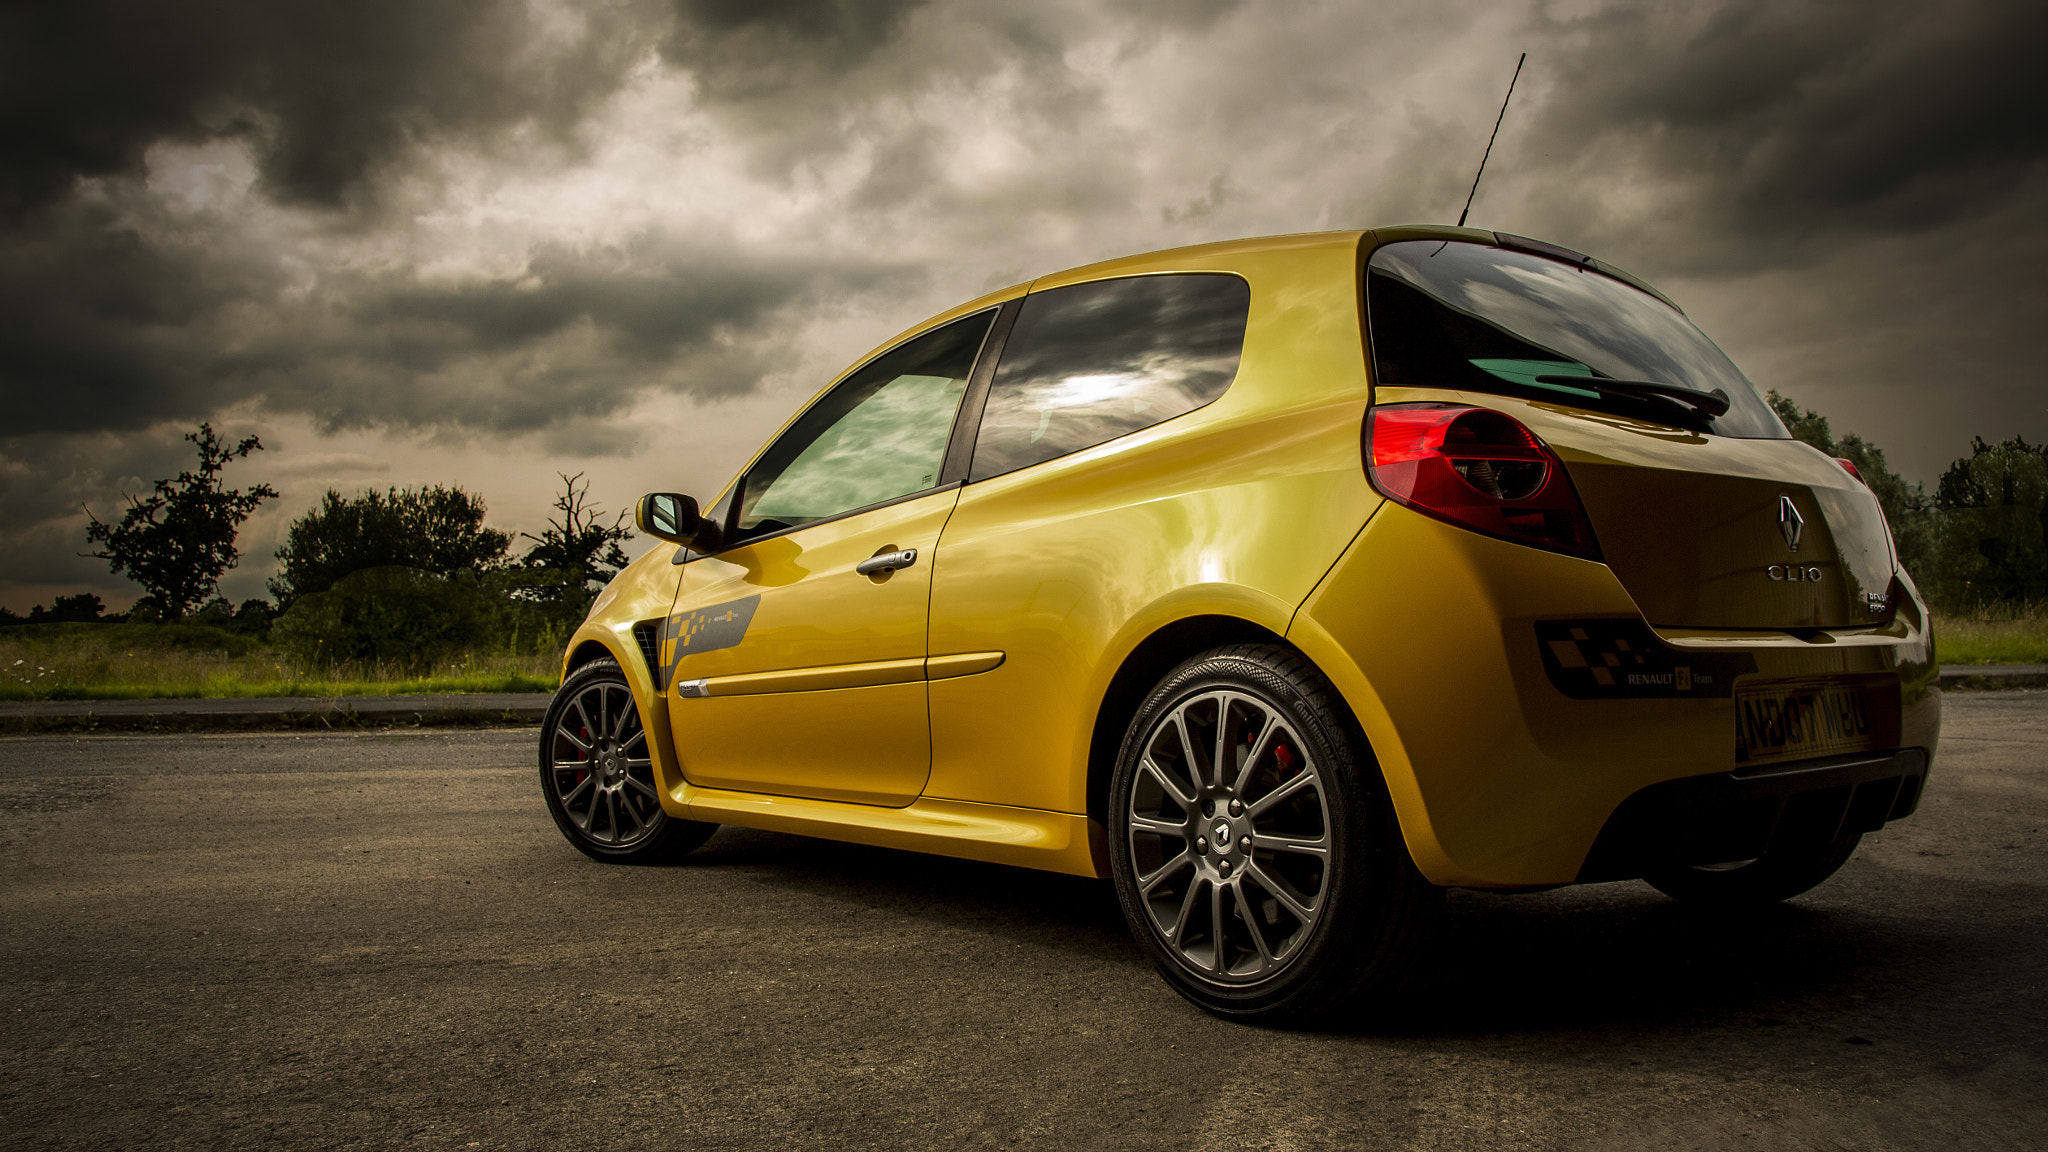 Photograph RenaultSport Clio 197 by AdrianFRST  on 500px